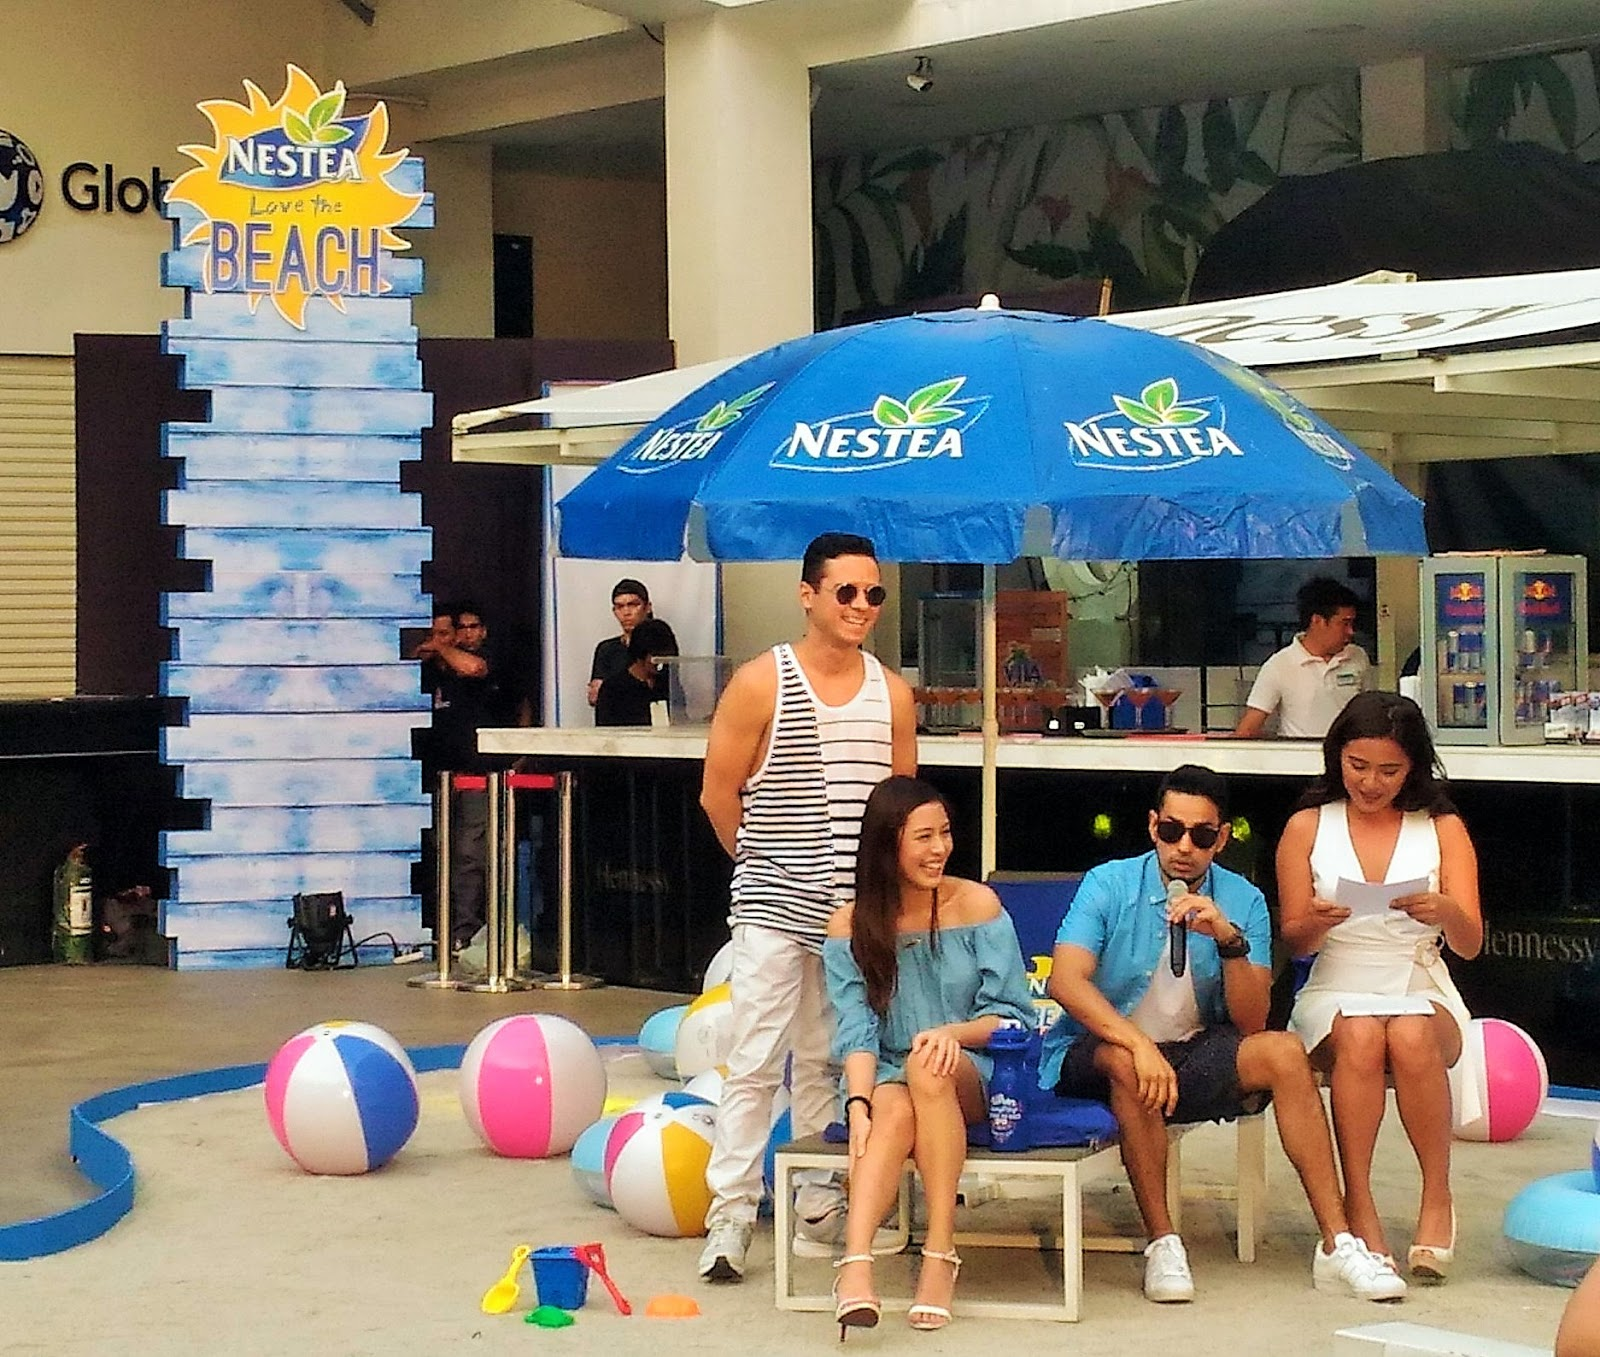 Nestea Chillax, bloggers event, Nestea Philippines, Palace Pool Club Manila